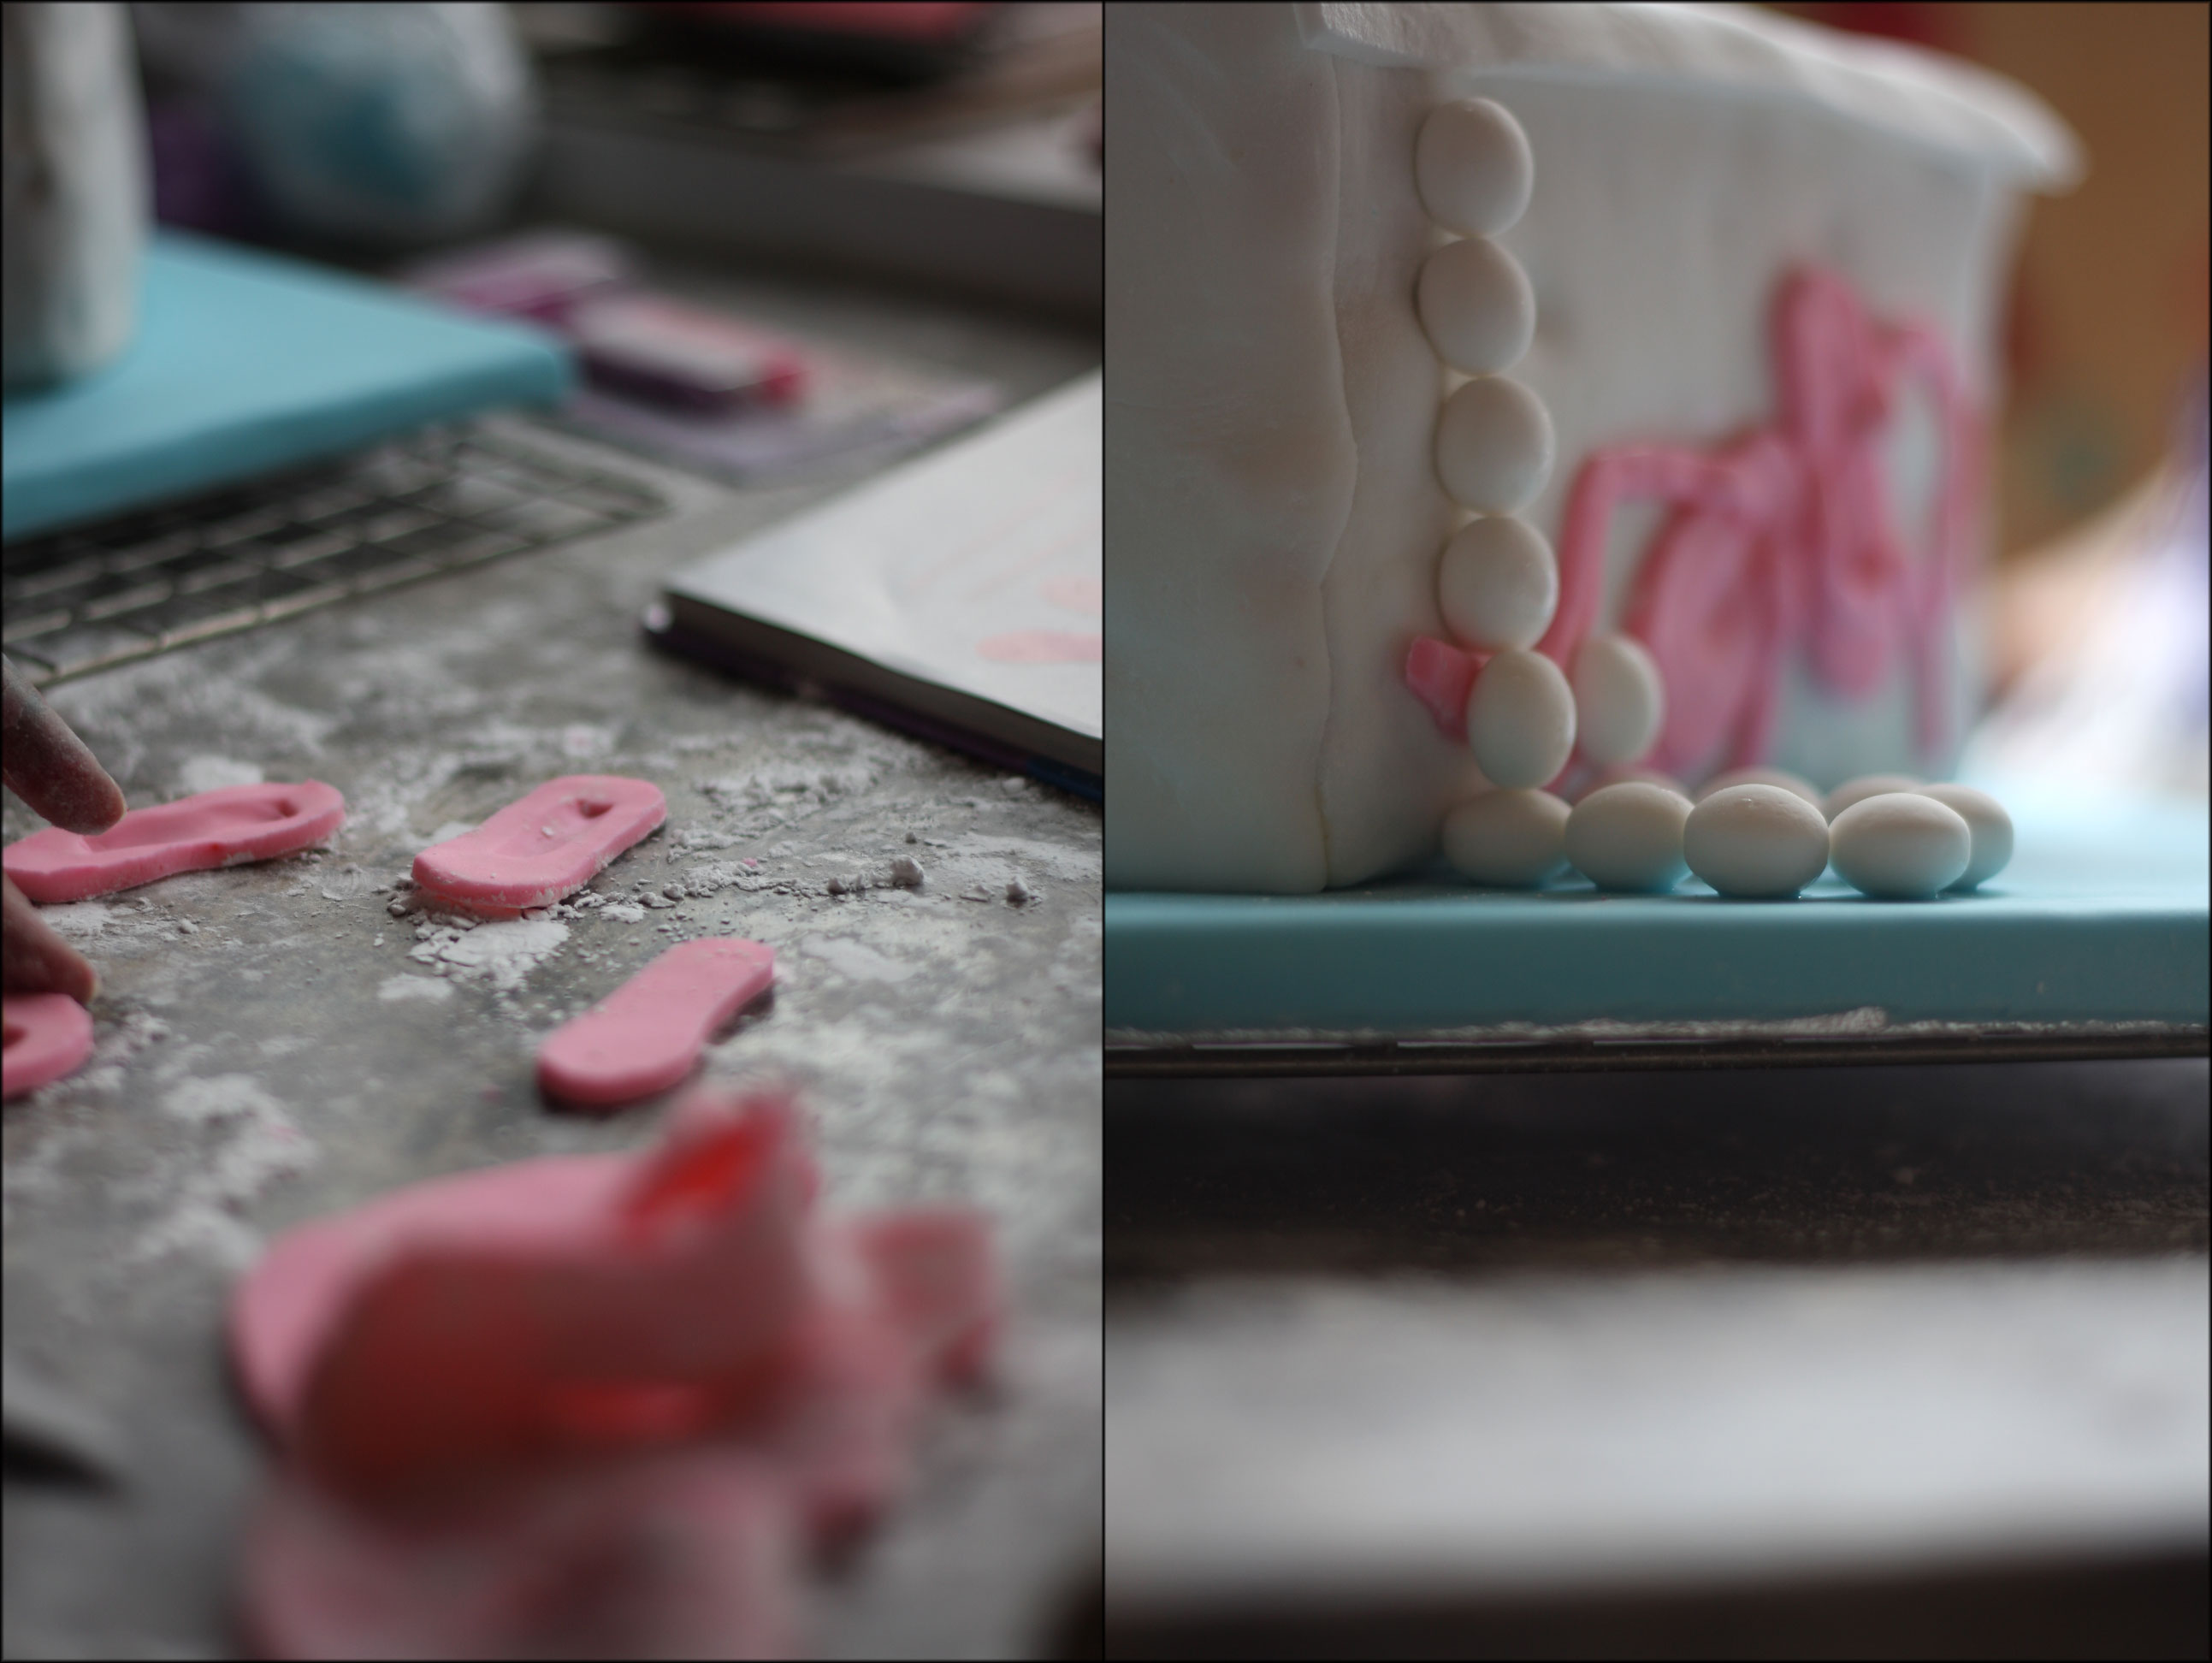 Cake Decorating Questions : buttercream icing decorating - images pictures - Bloguez.com